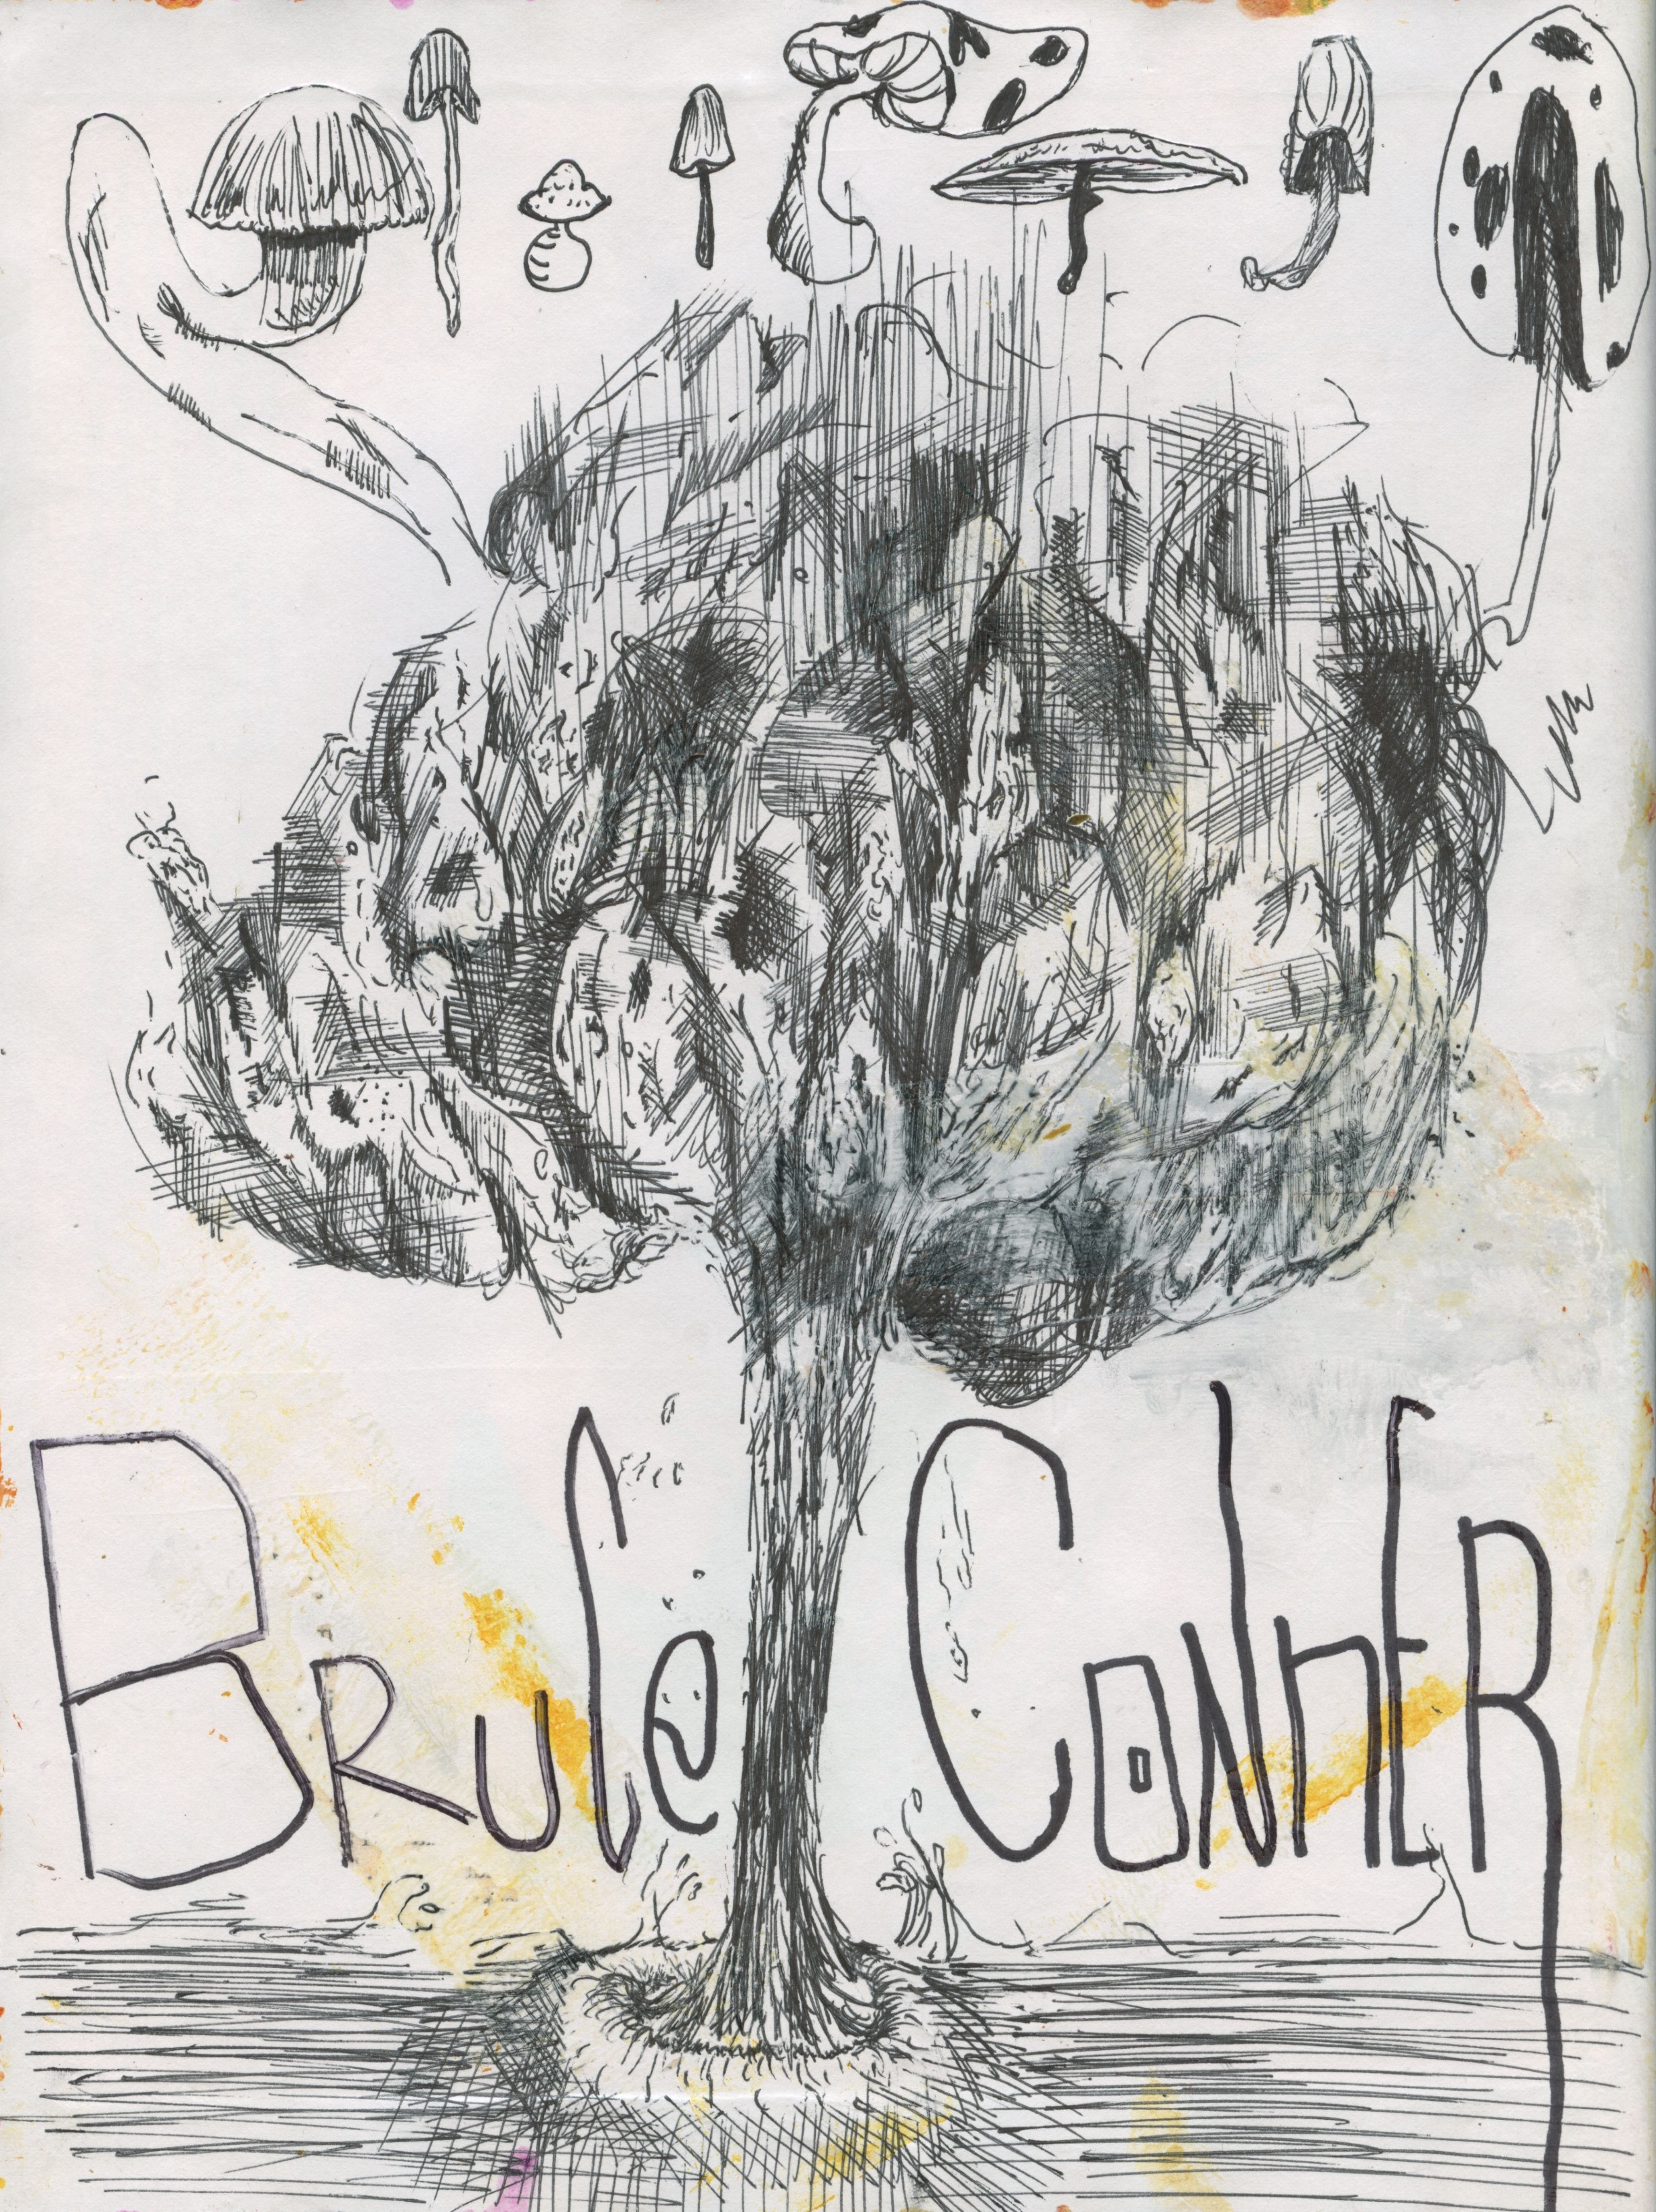 Moma: Bruce Conner